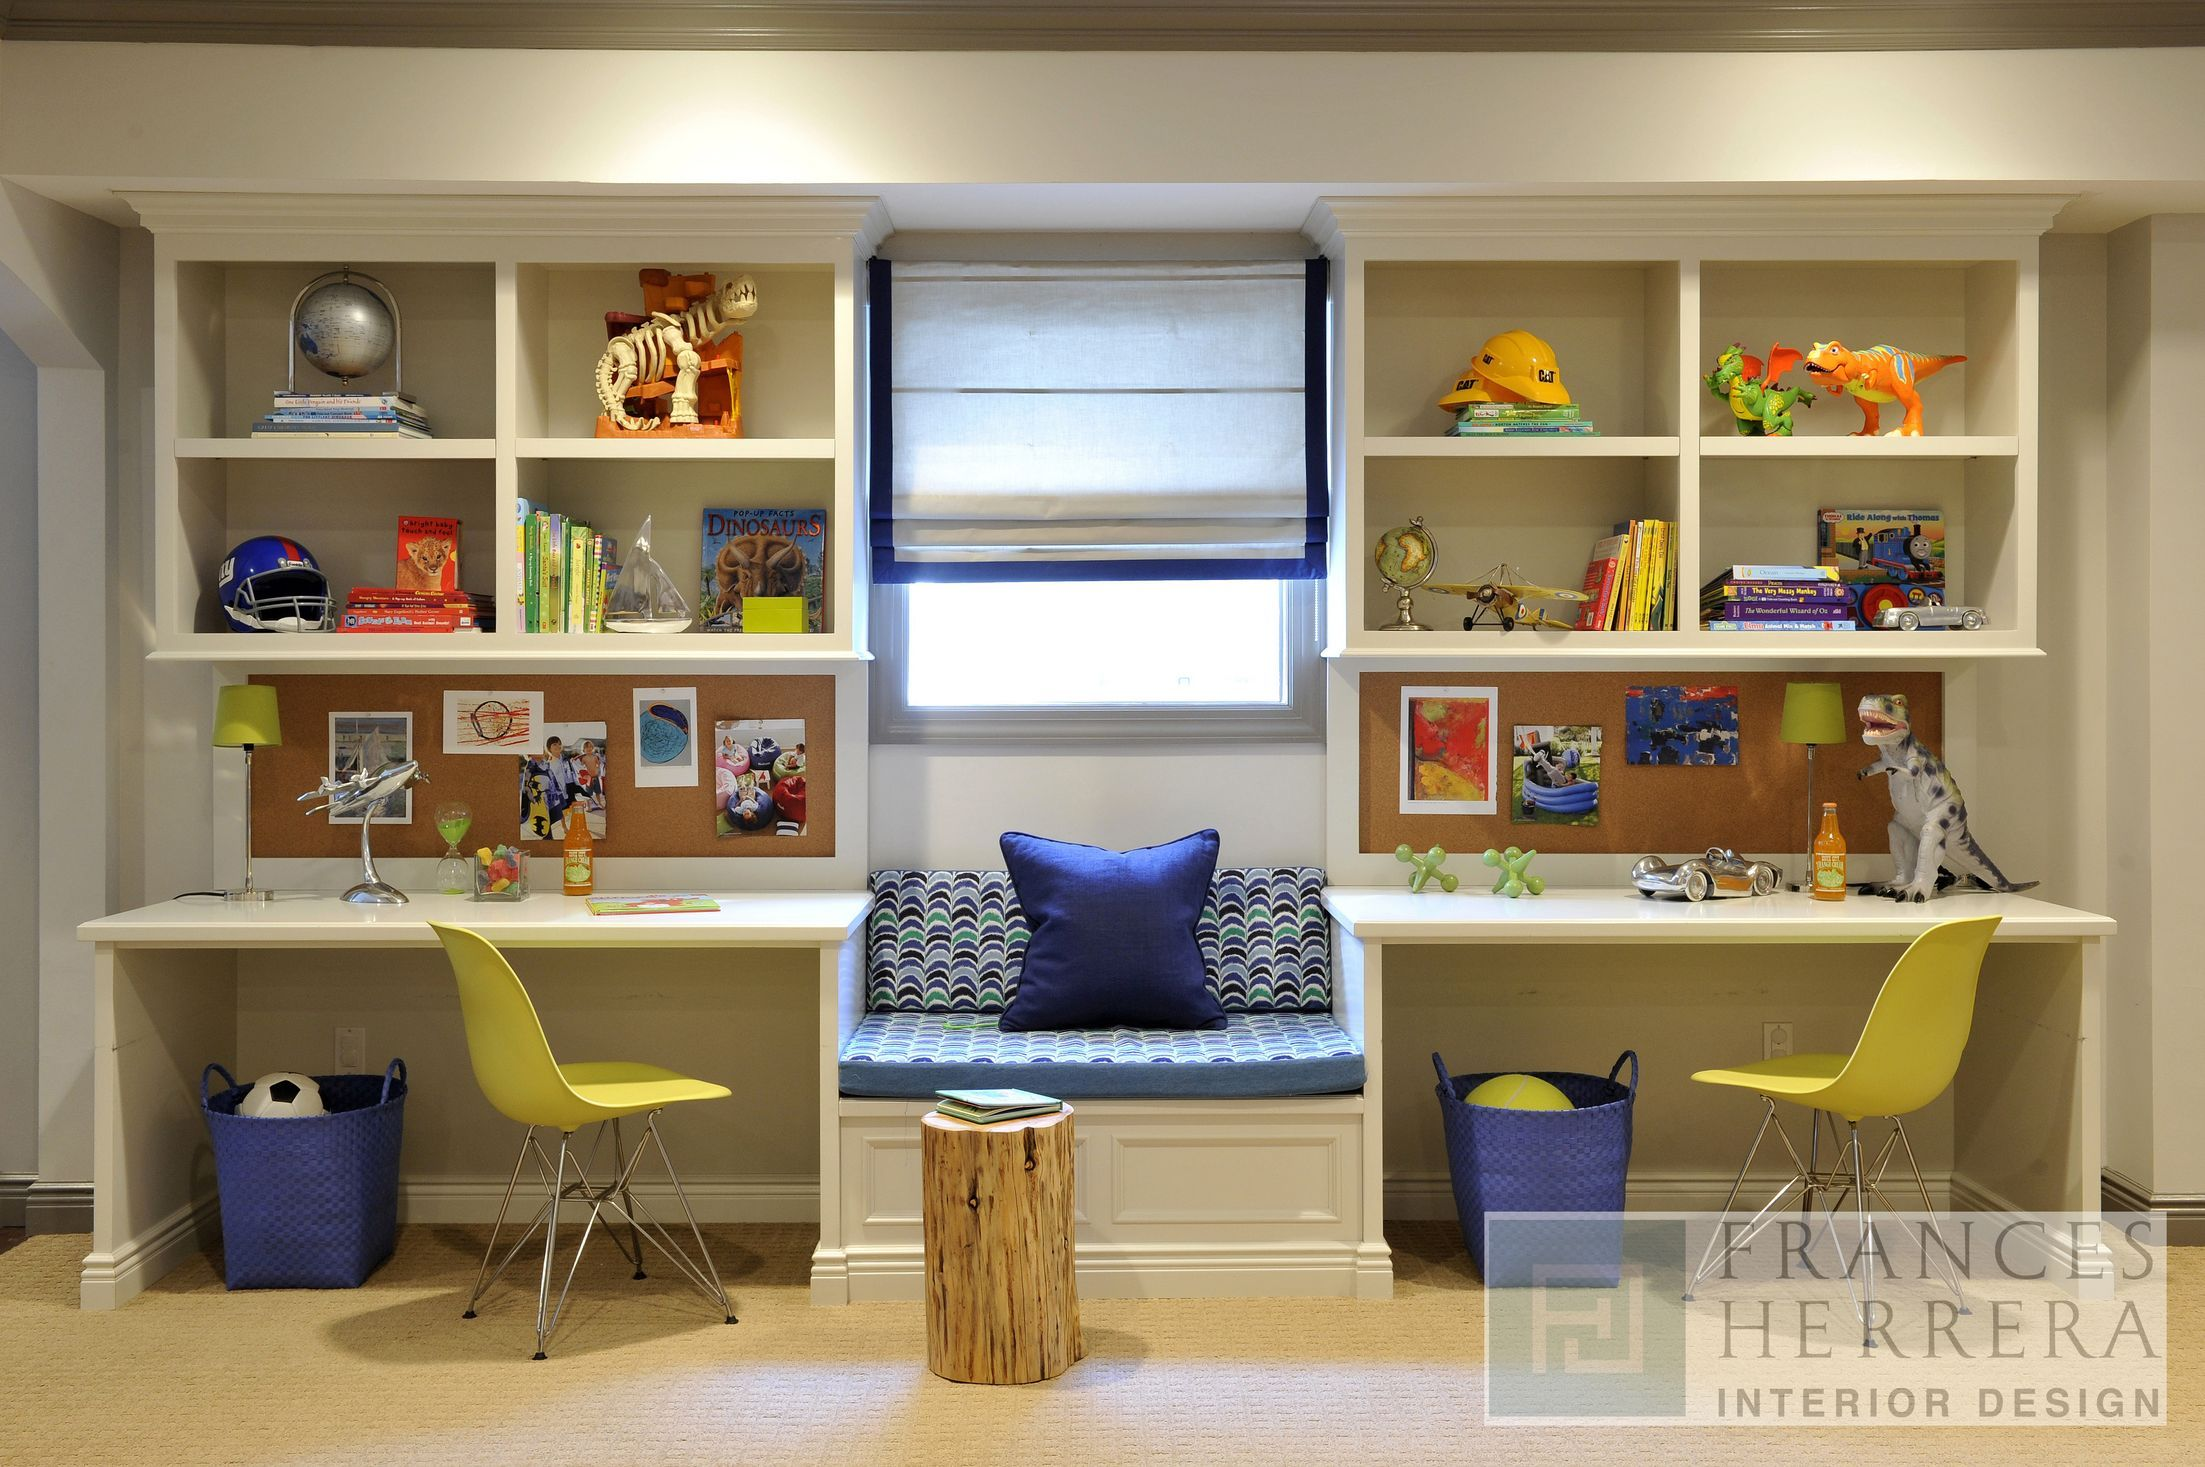 Kids playroom moment children 39 s game rec room images for Kids rec room ideas